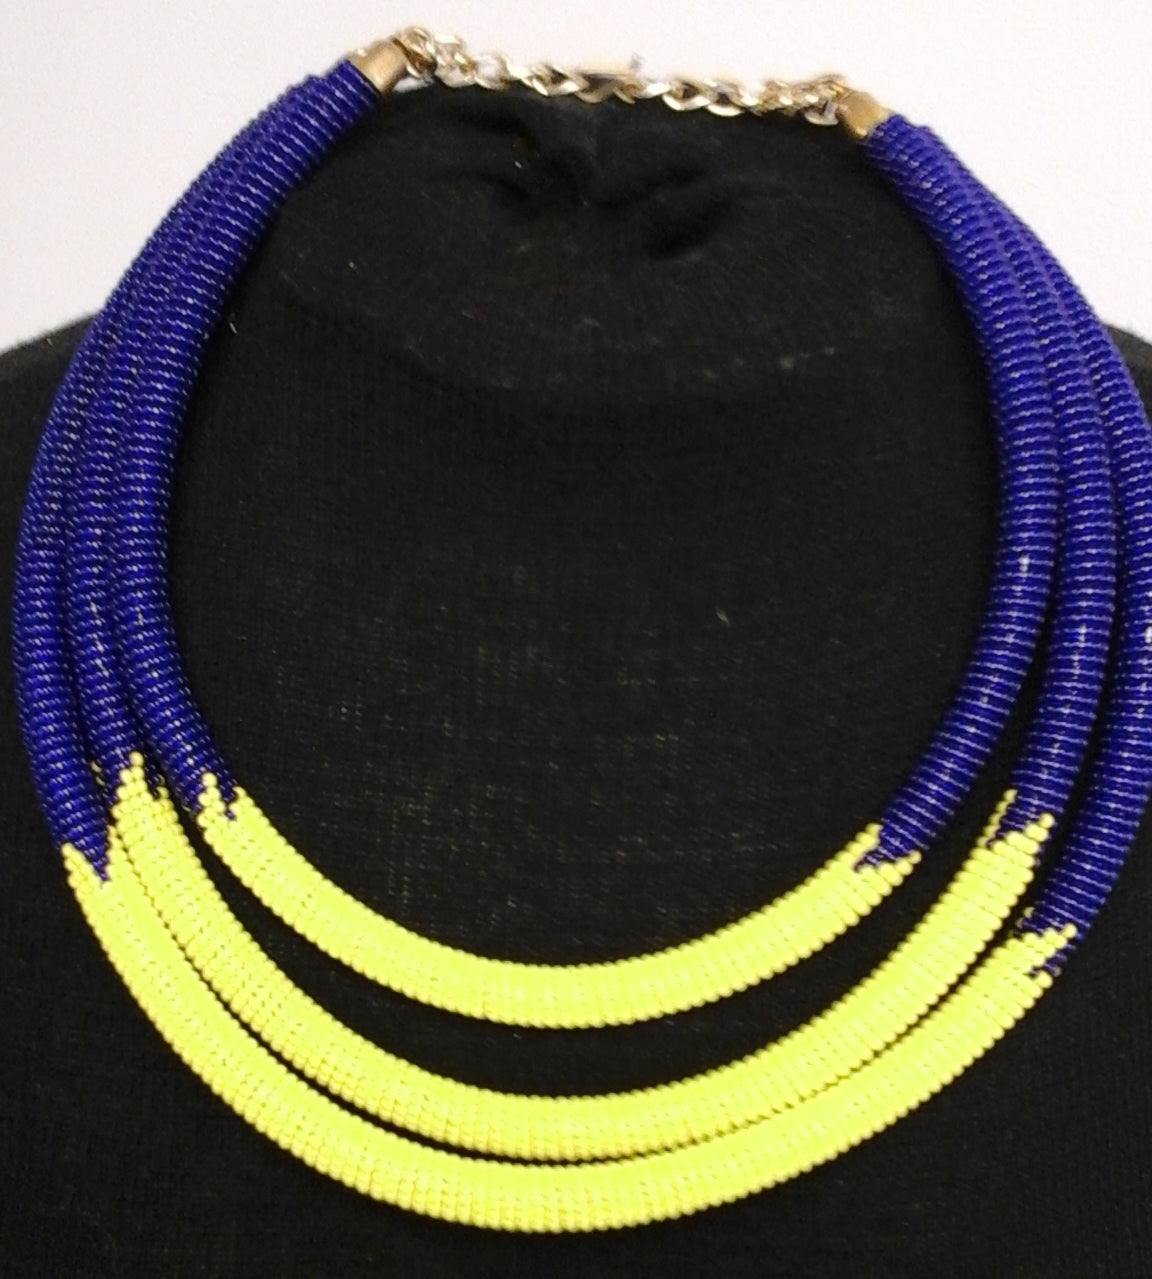 Triple Choker necklace